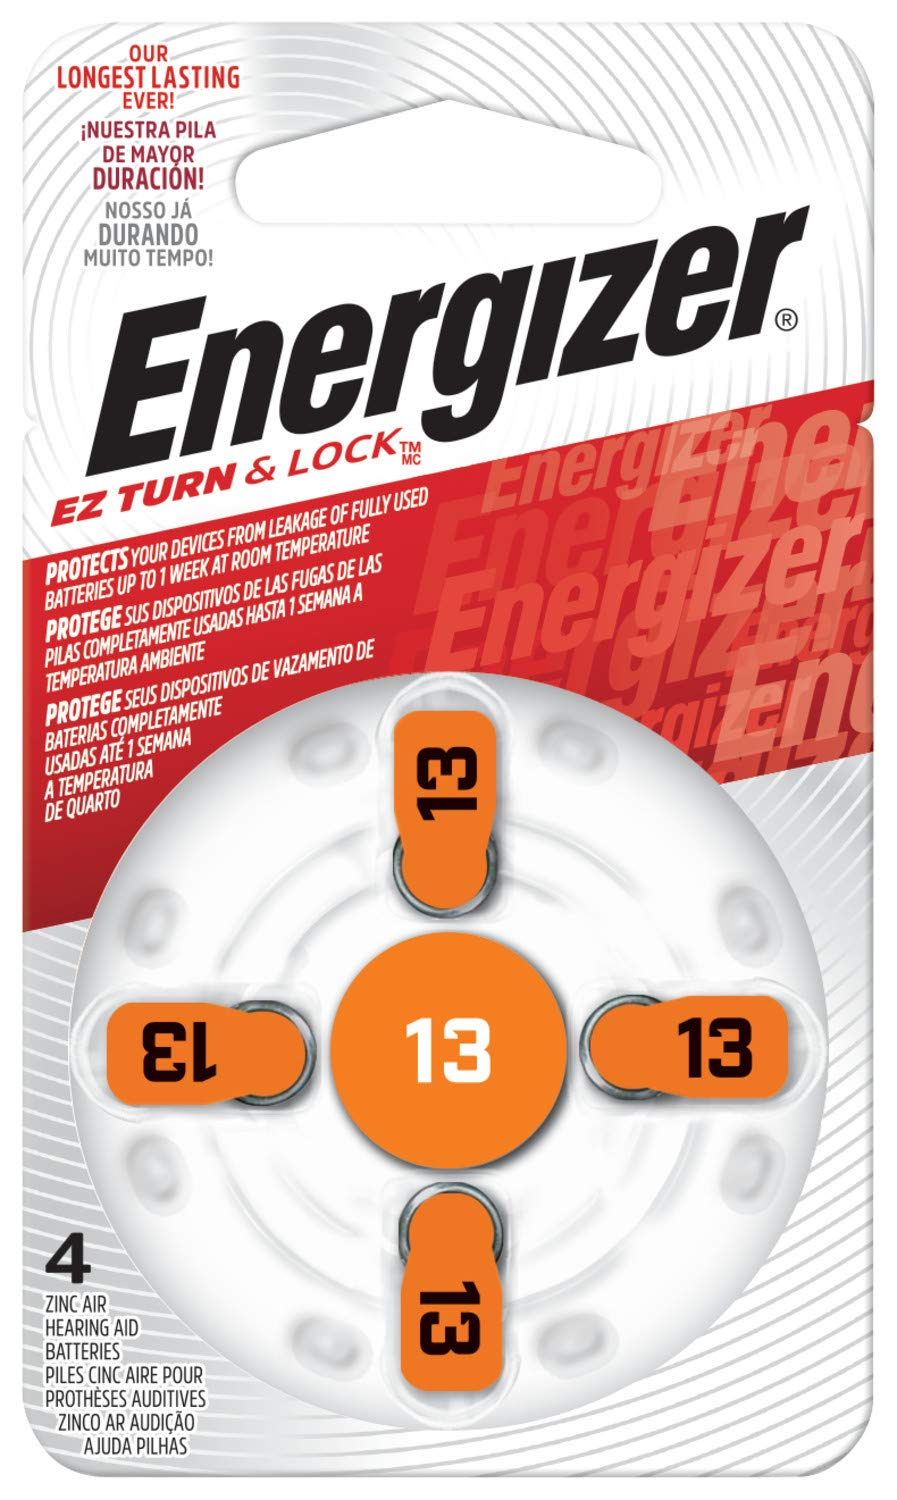 Energizer EZ Turn & Lock Size 13 Hearing Aid Battery, 96-Count